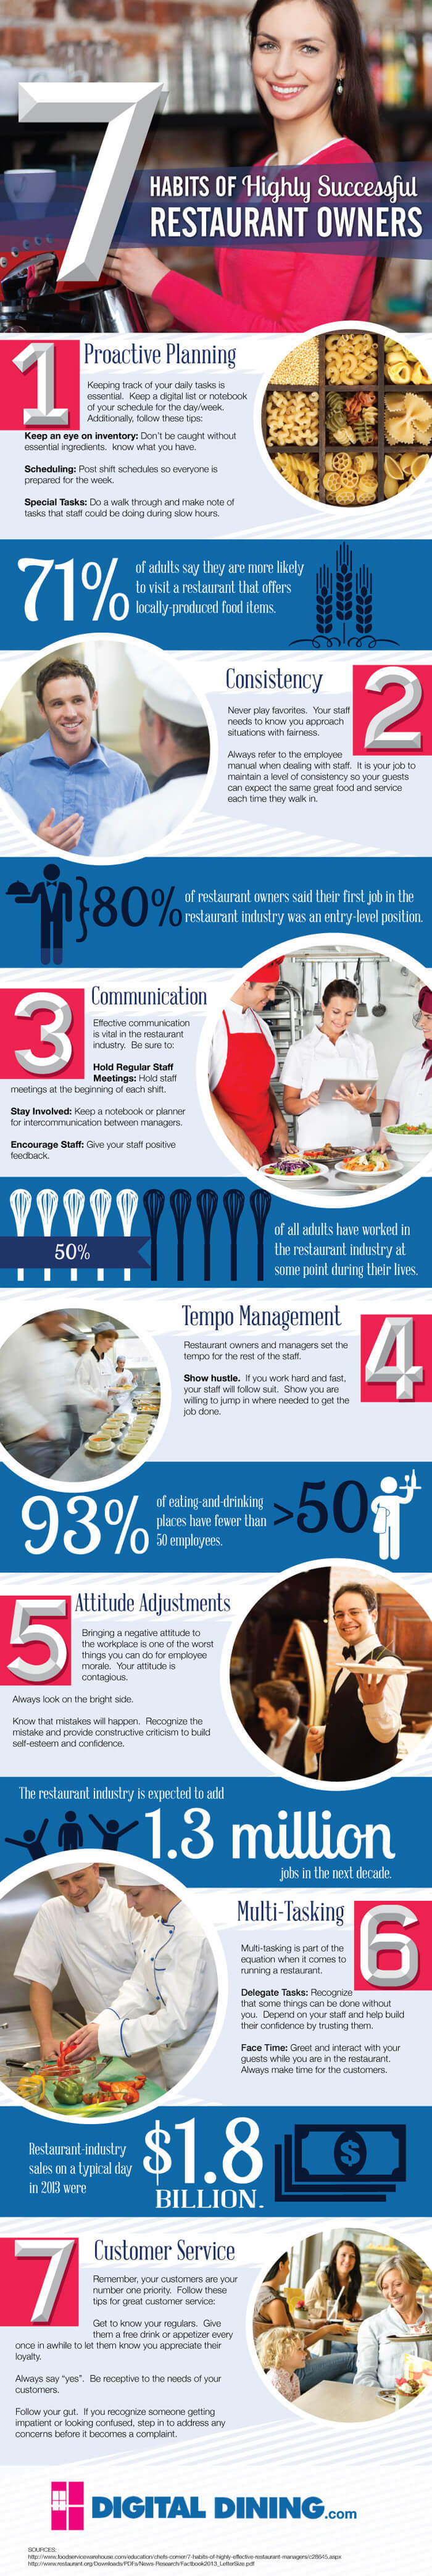 successful-restaurant-owners-infographic